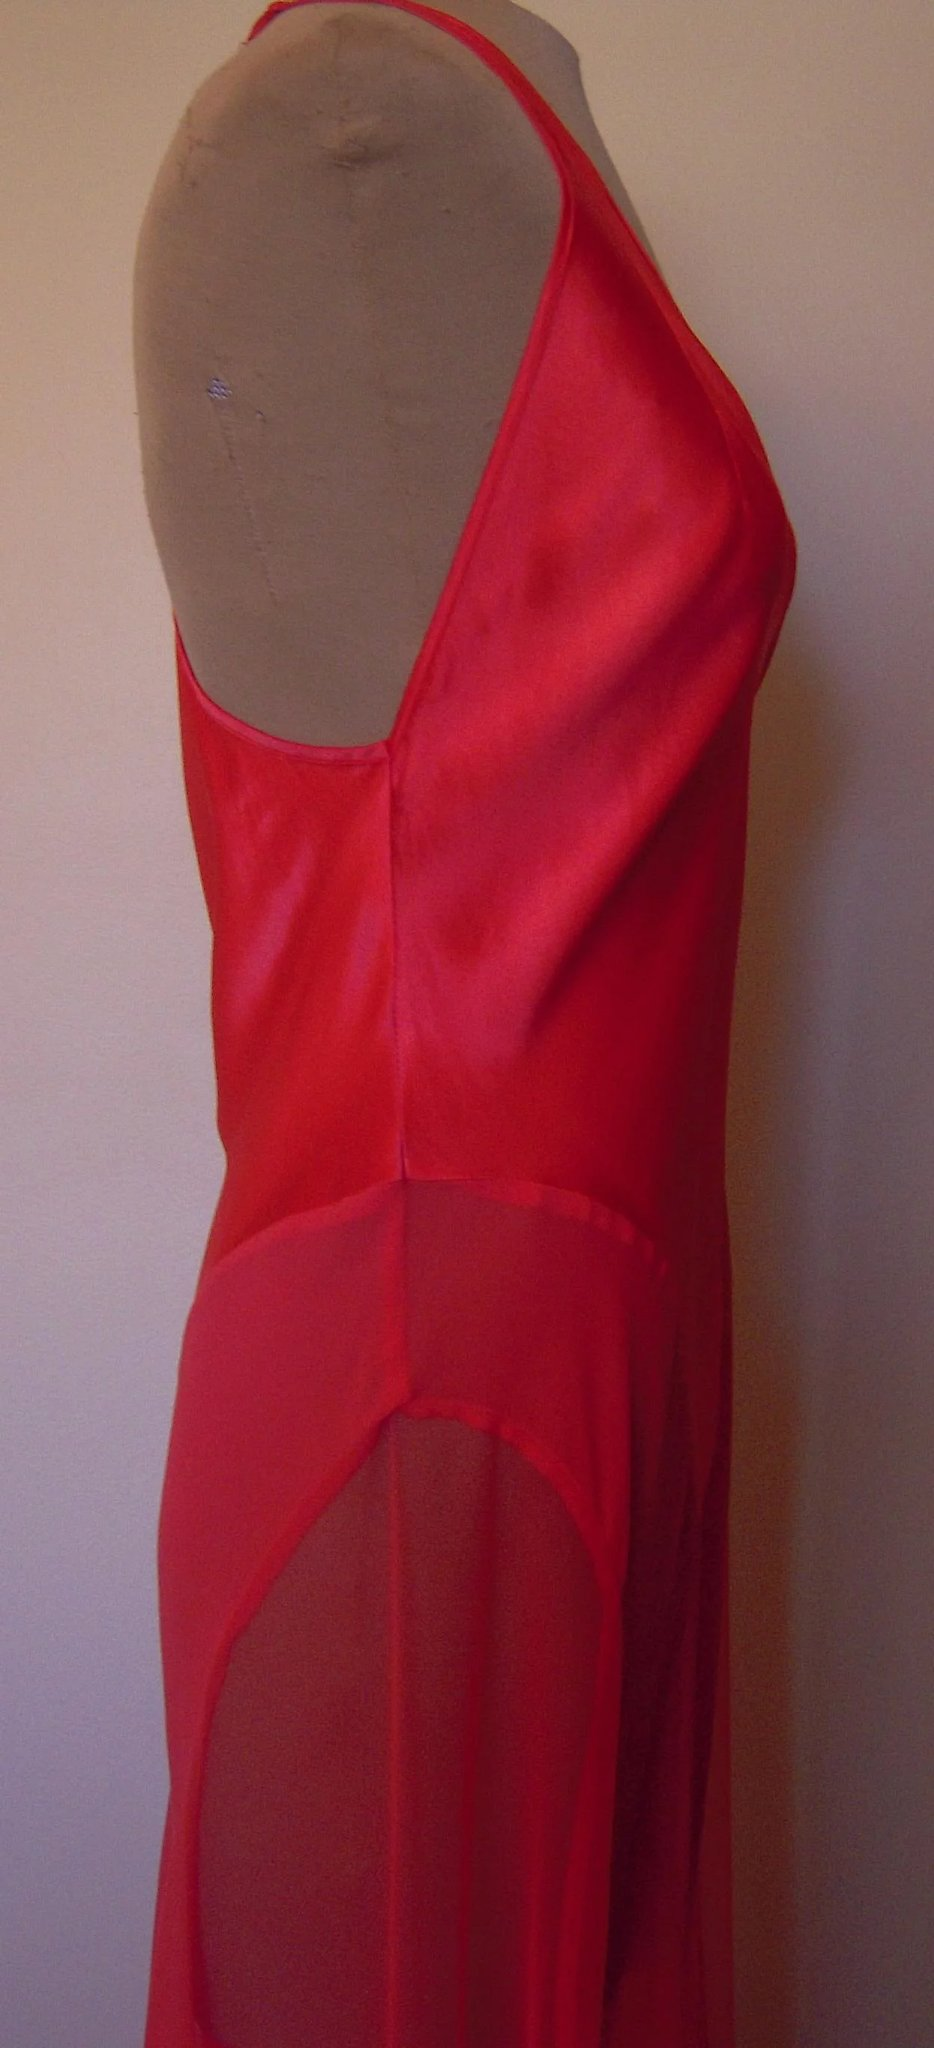 Red Long Silk Victoria Secret Nightgown with Netting on the Side ...